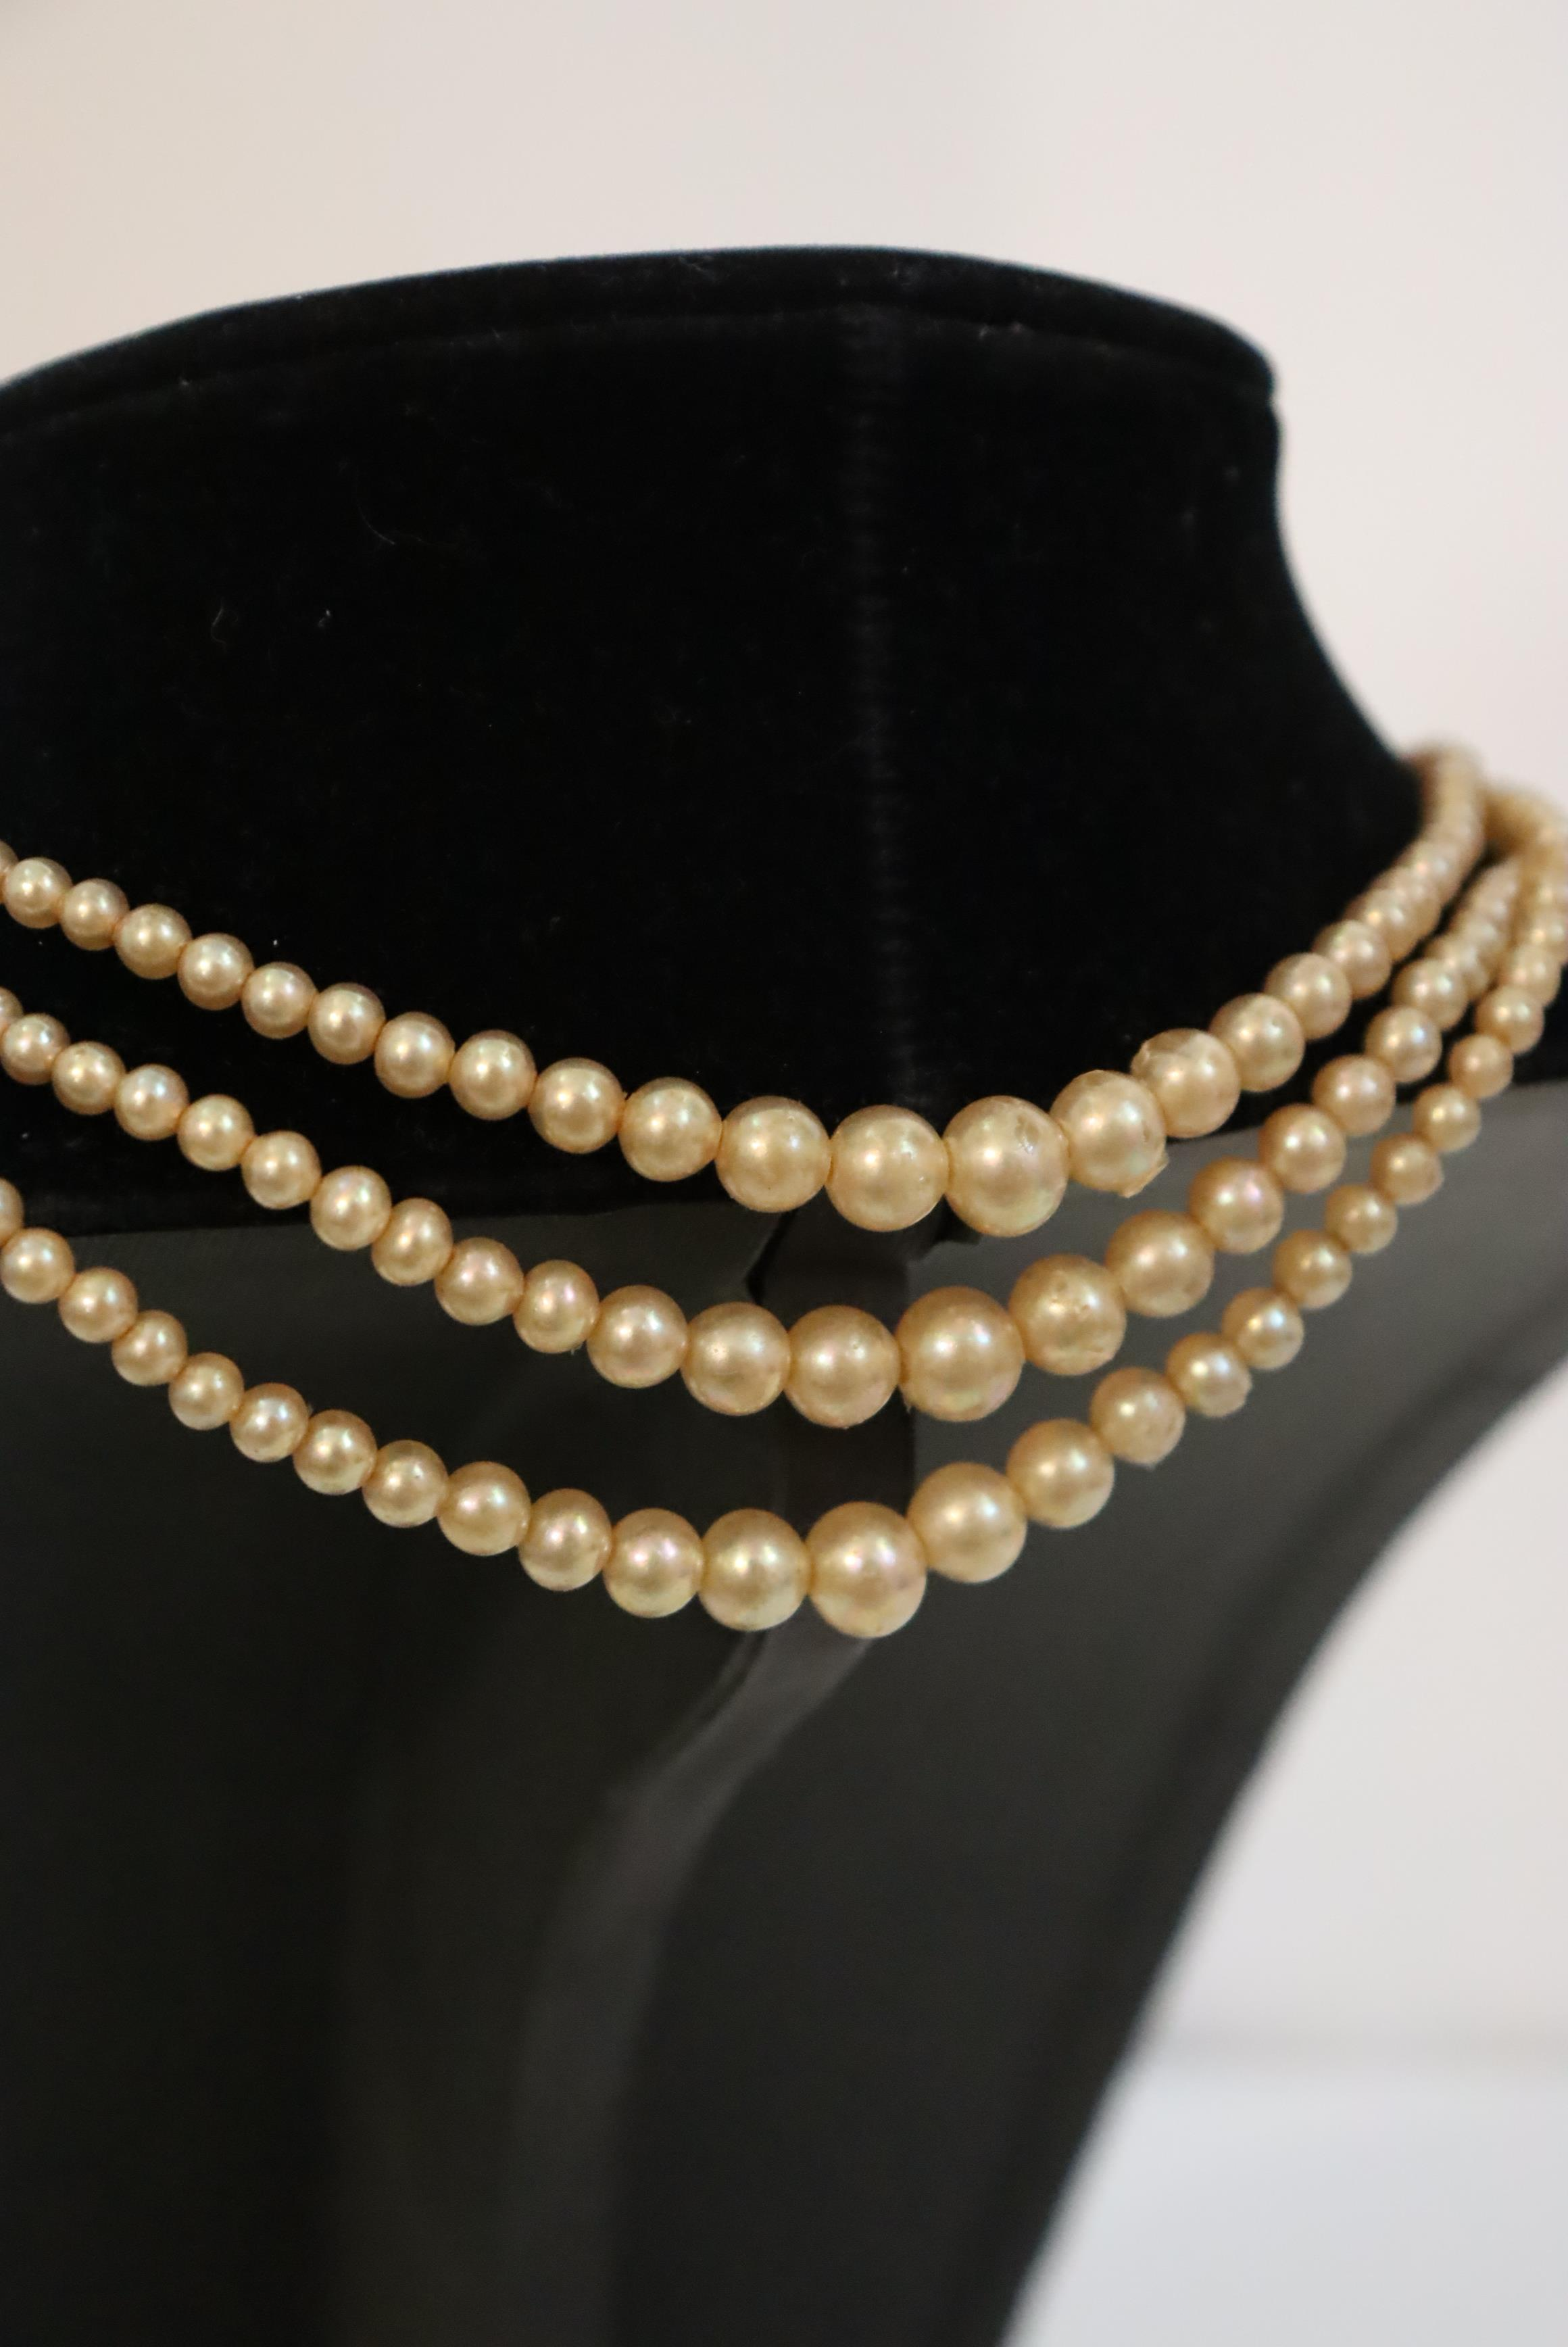 Large Collection of (10) Pearl / Beaded Necklaces - Image 10 of 20